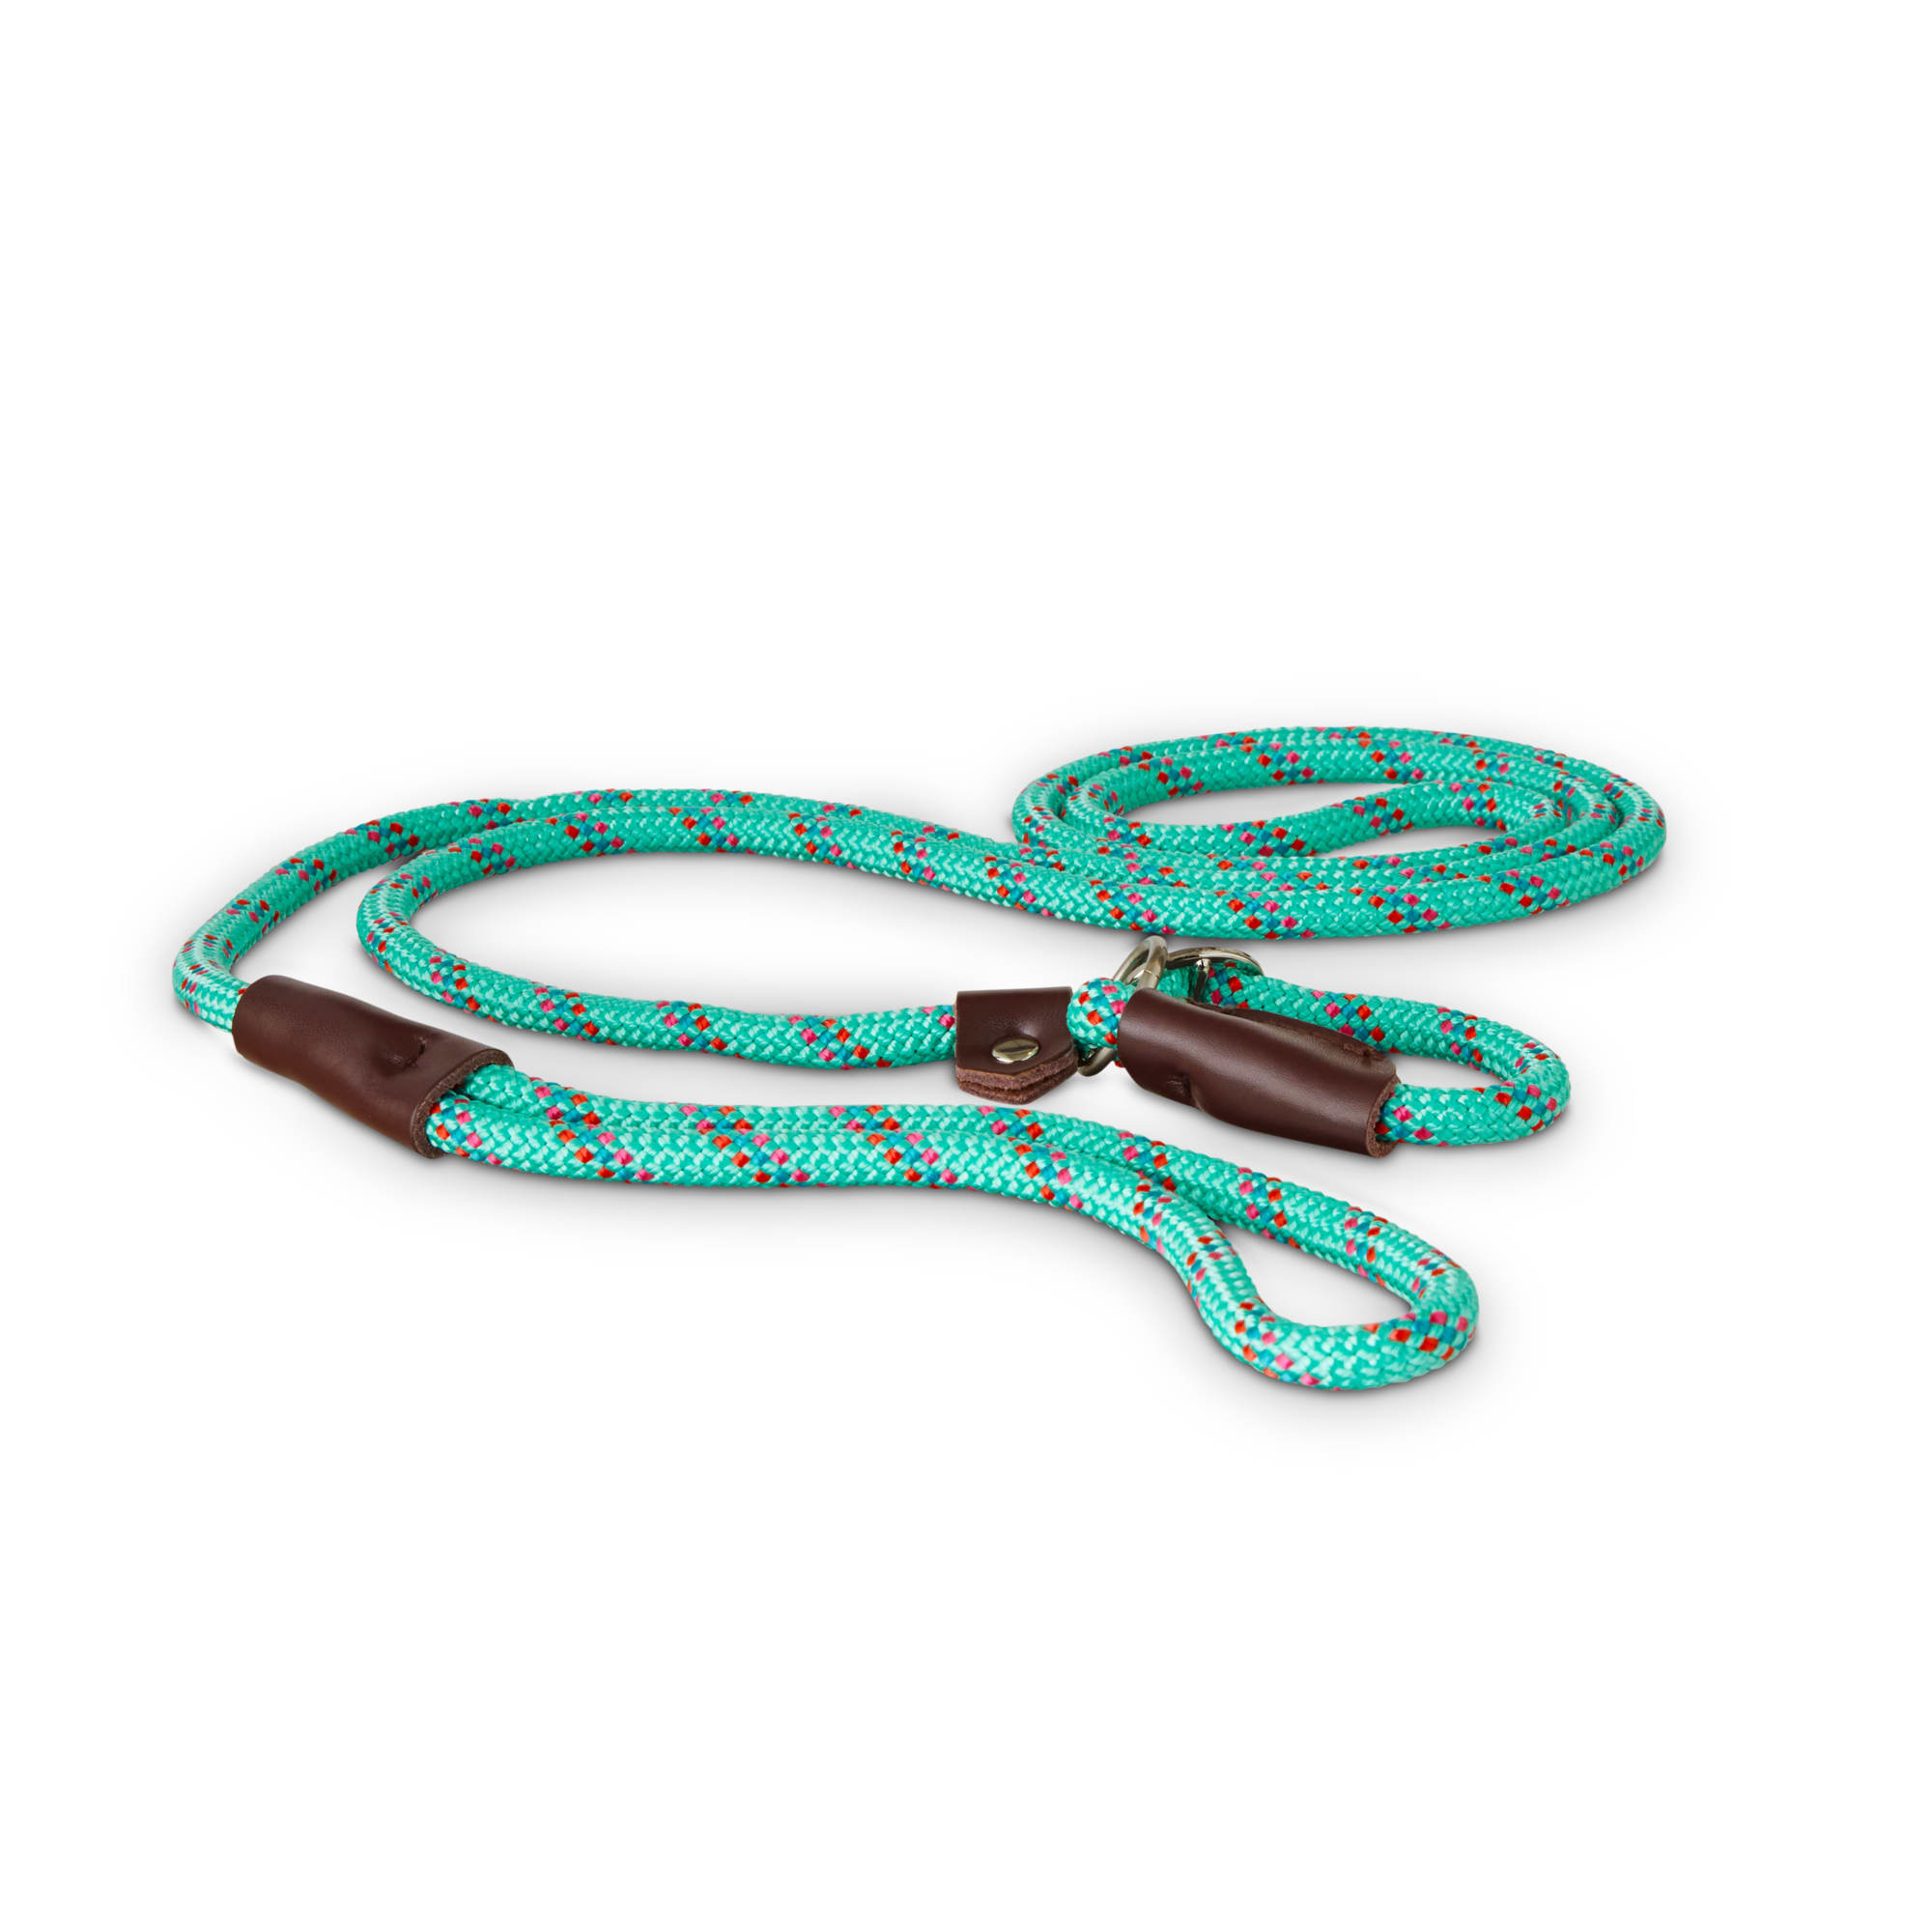 120 cm UMI Essential Durable Diagonal Striped Dog Rope Lead in Blue with Comfy Neoprene Handle Strong Leads for Dogs